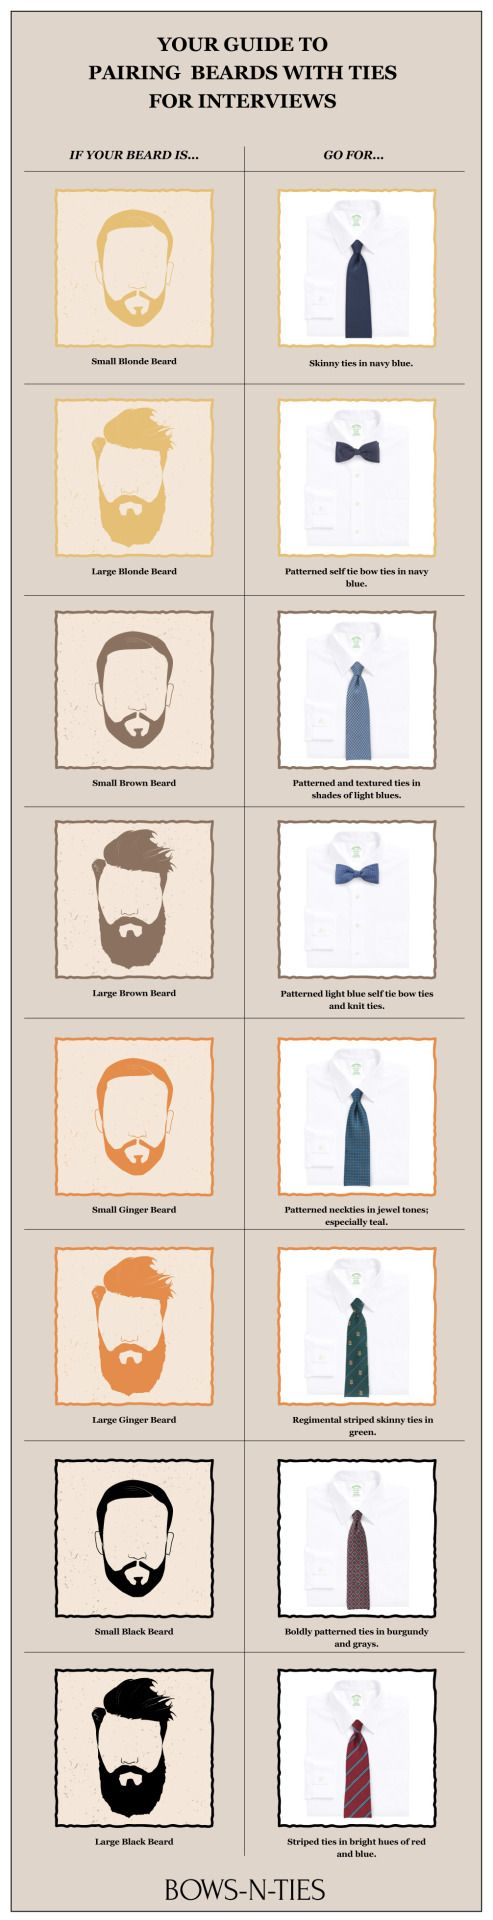 Tips on how to accessorize for your beard type and color.